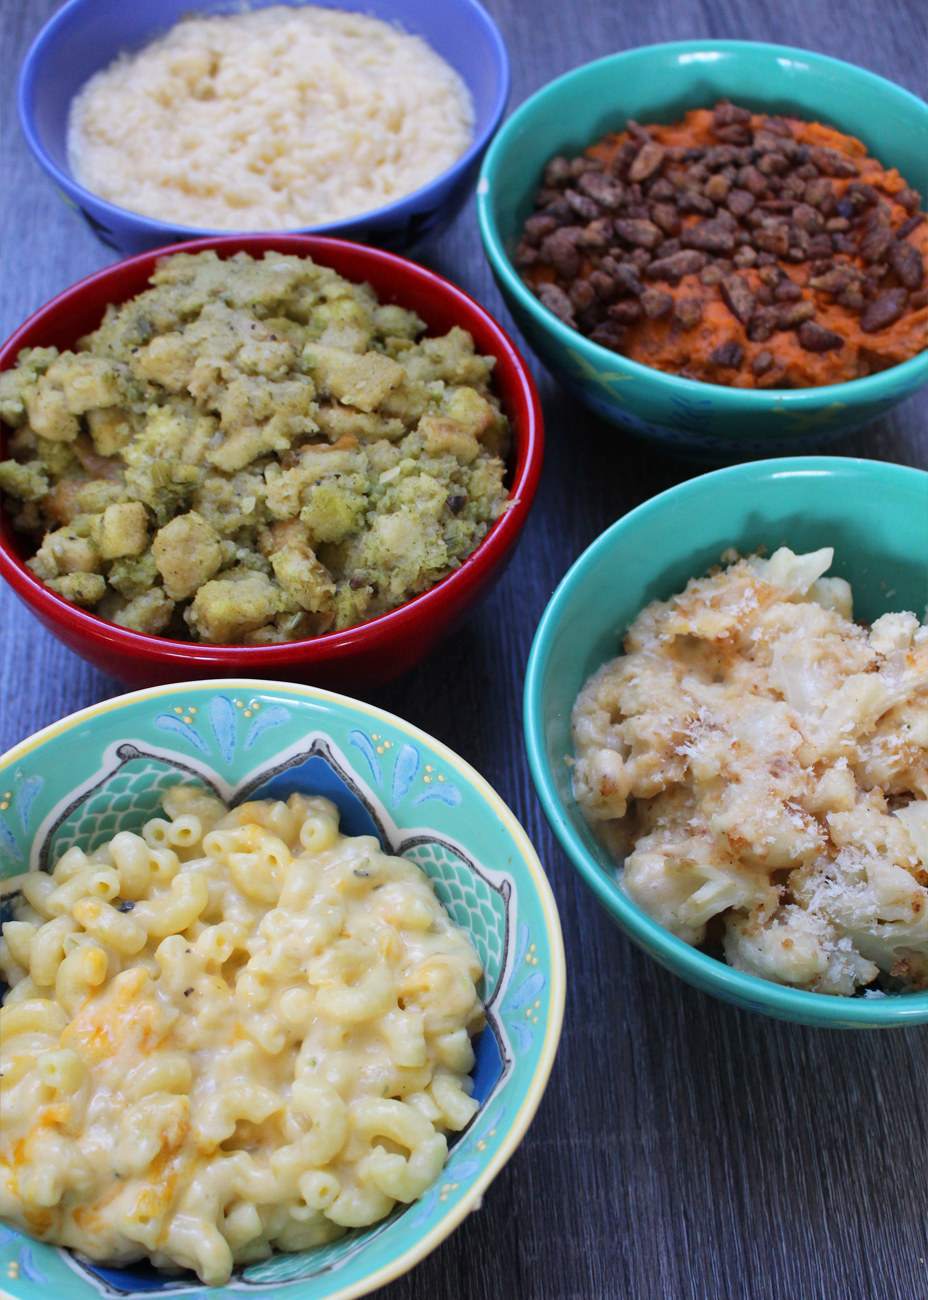 Thanksgiving side dishes like mac 'n' cheese, scalloped potatoes, stuffing, mashed sweet potato, and regular mashed potatoes in bowls.